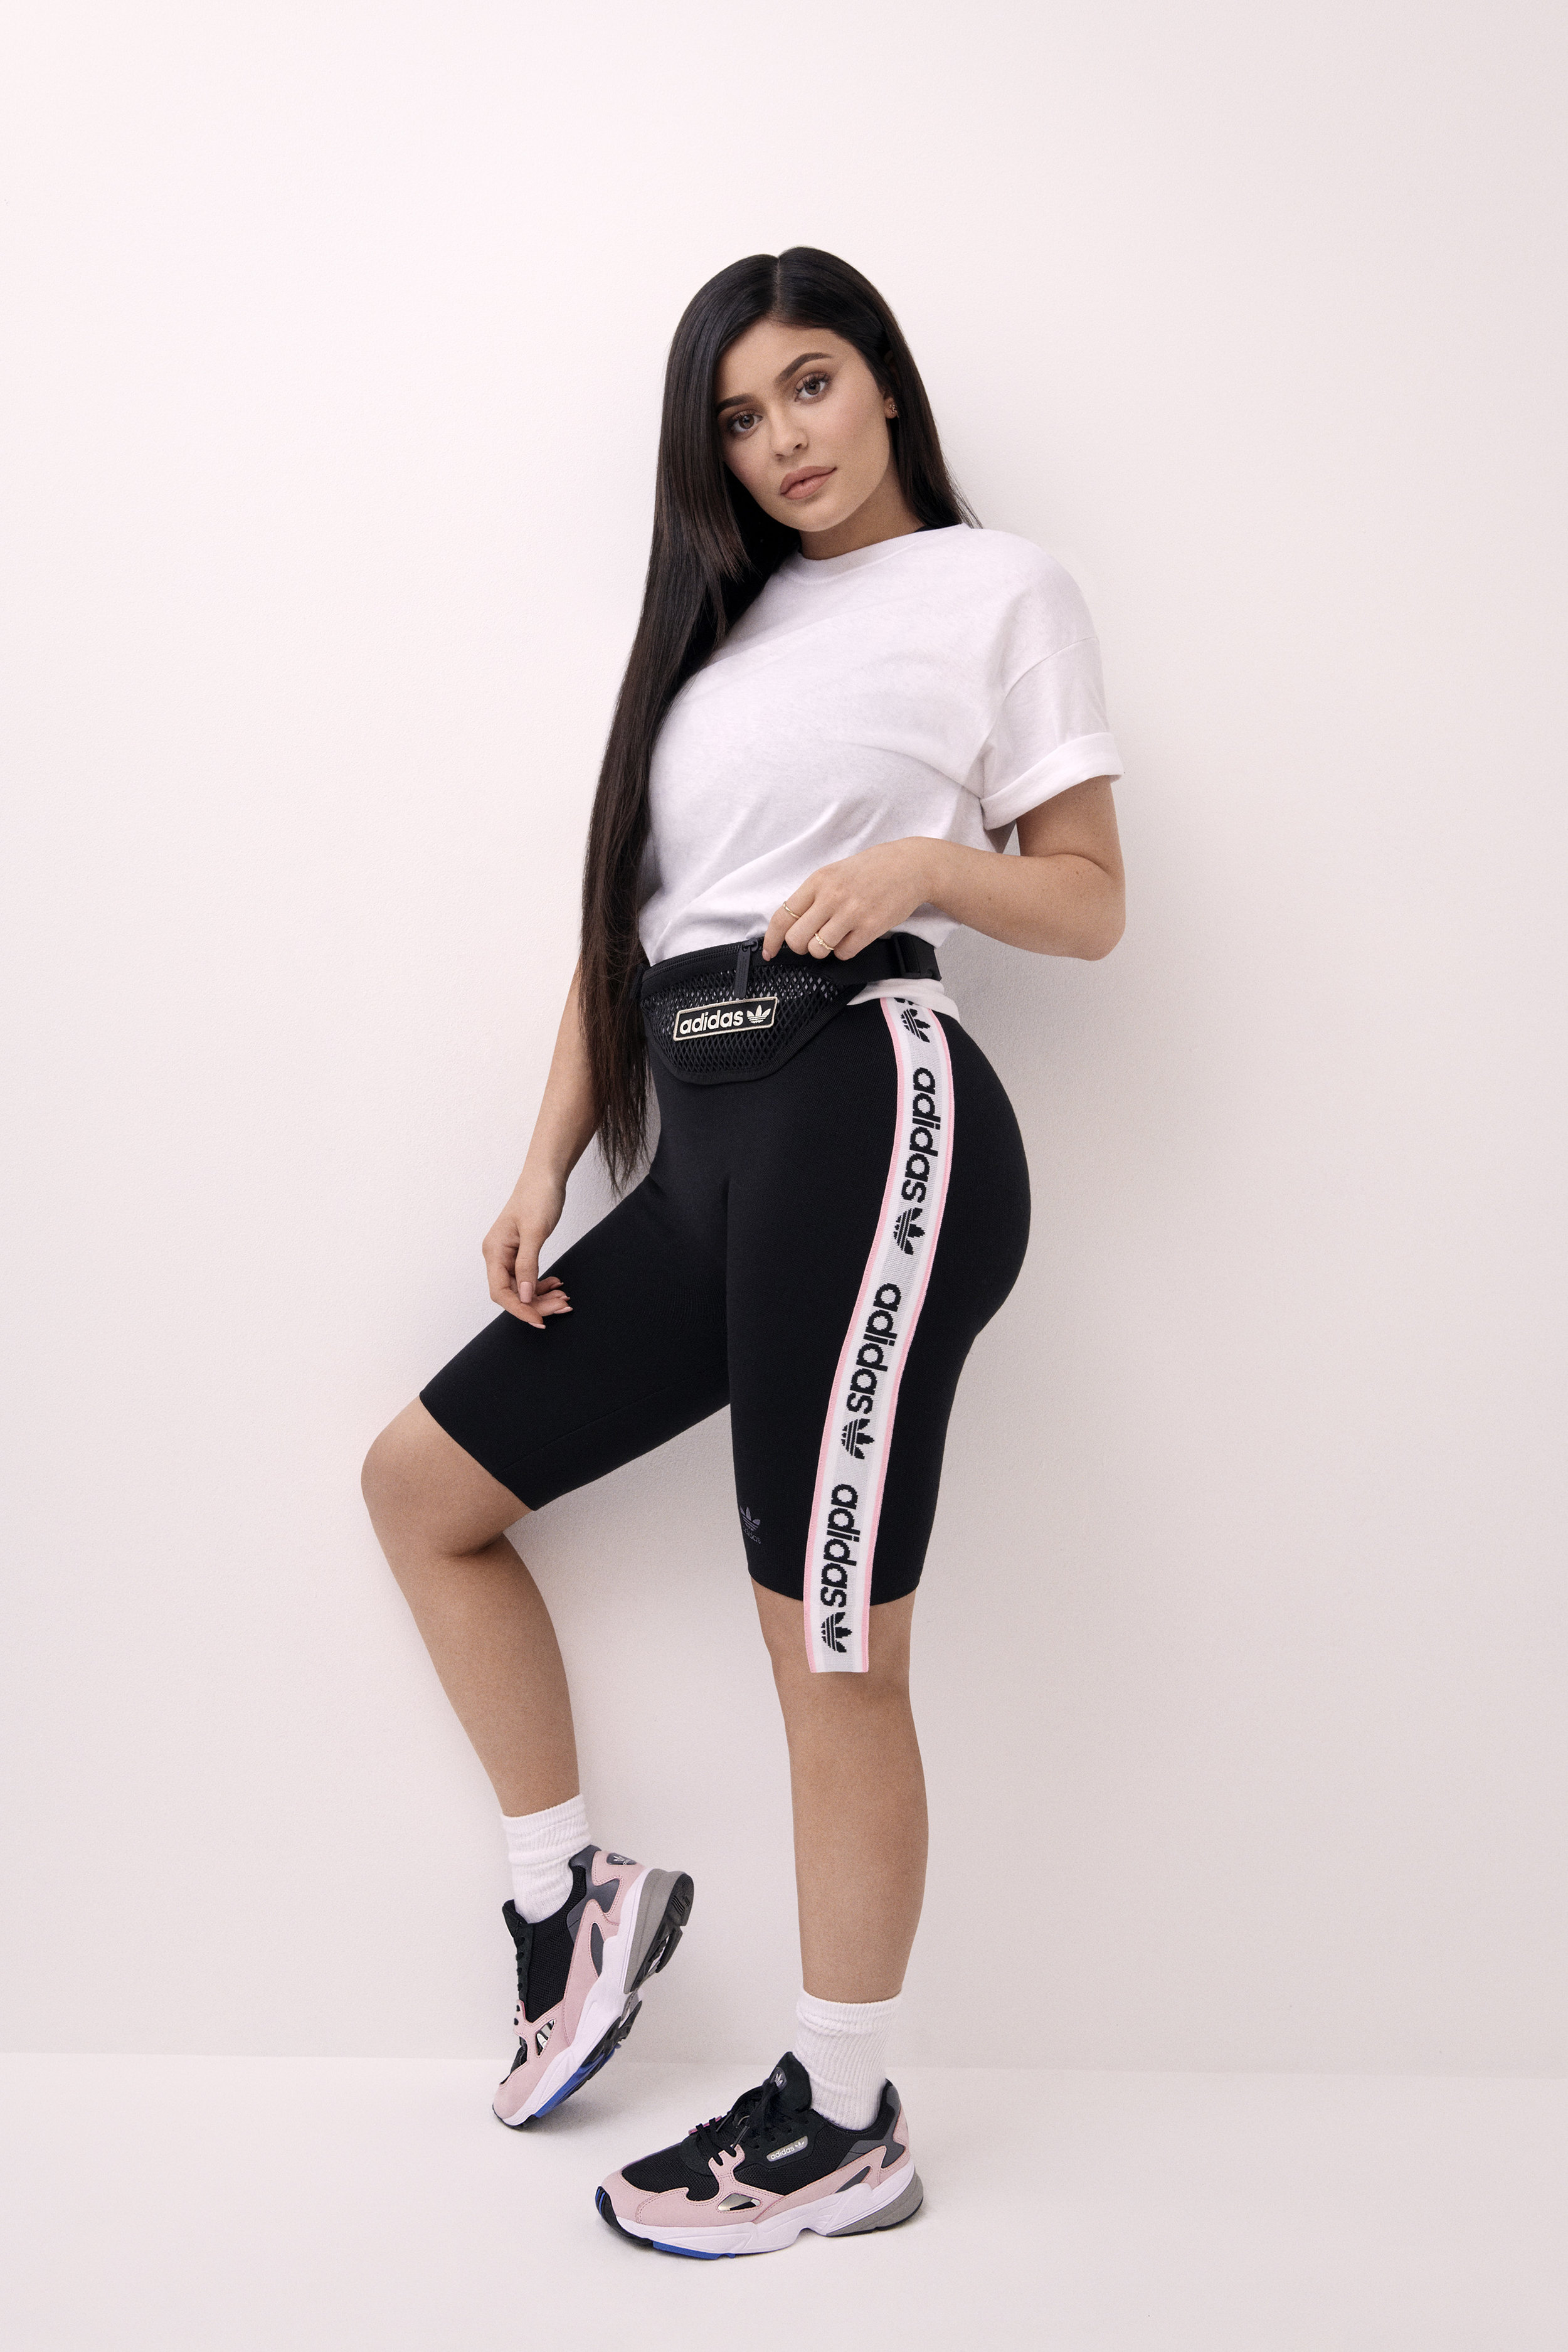 AdidasOriginal_FW18_Falcon_B28126_Look2_FullBody_0012_03.jpg